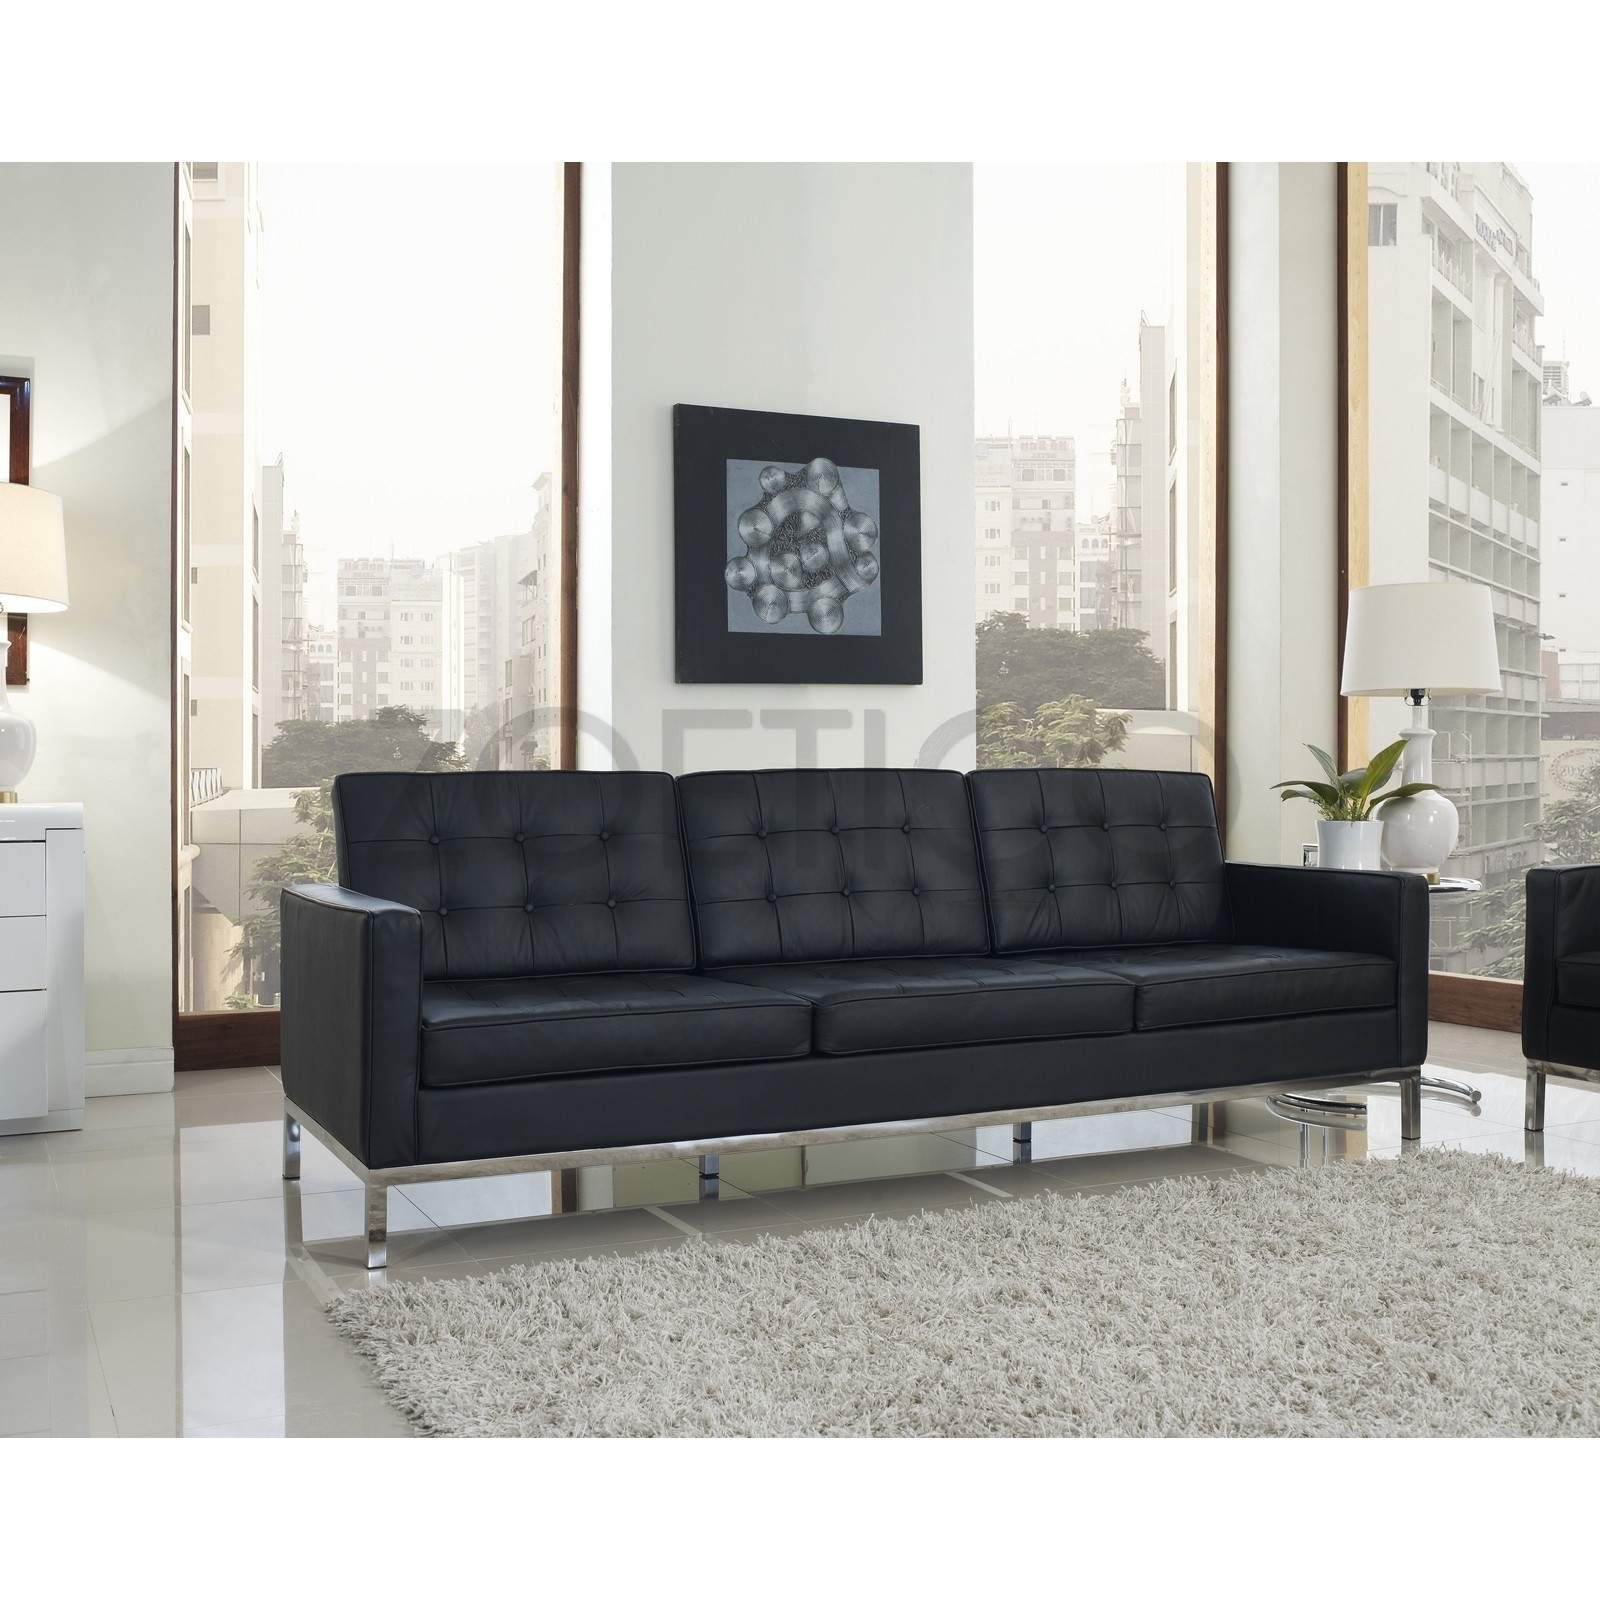 Best Knoll Style Sofa Brostuhl Inside Florence Knoll Style Sofas Image Of  With Brostuhl 4 You